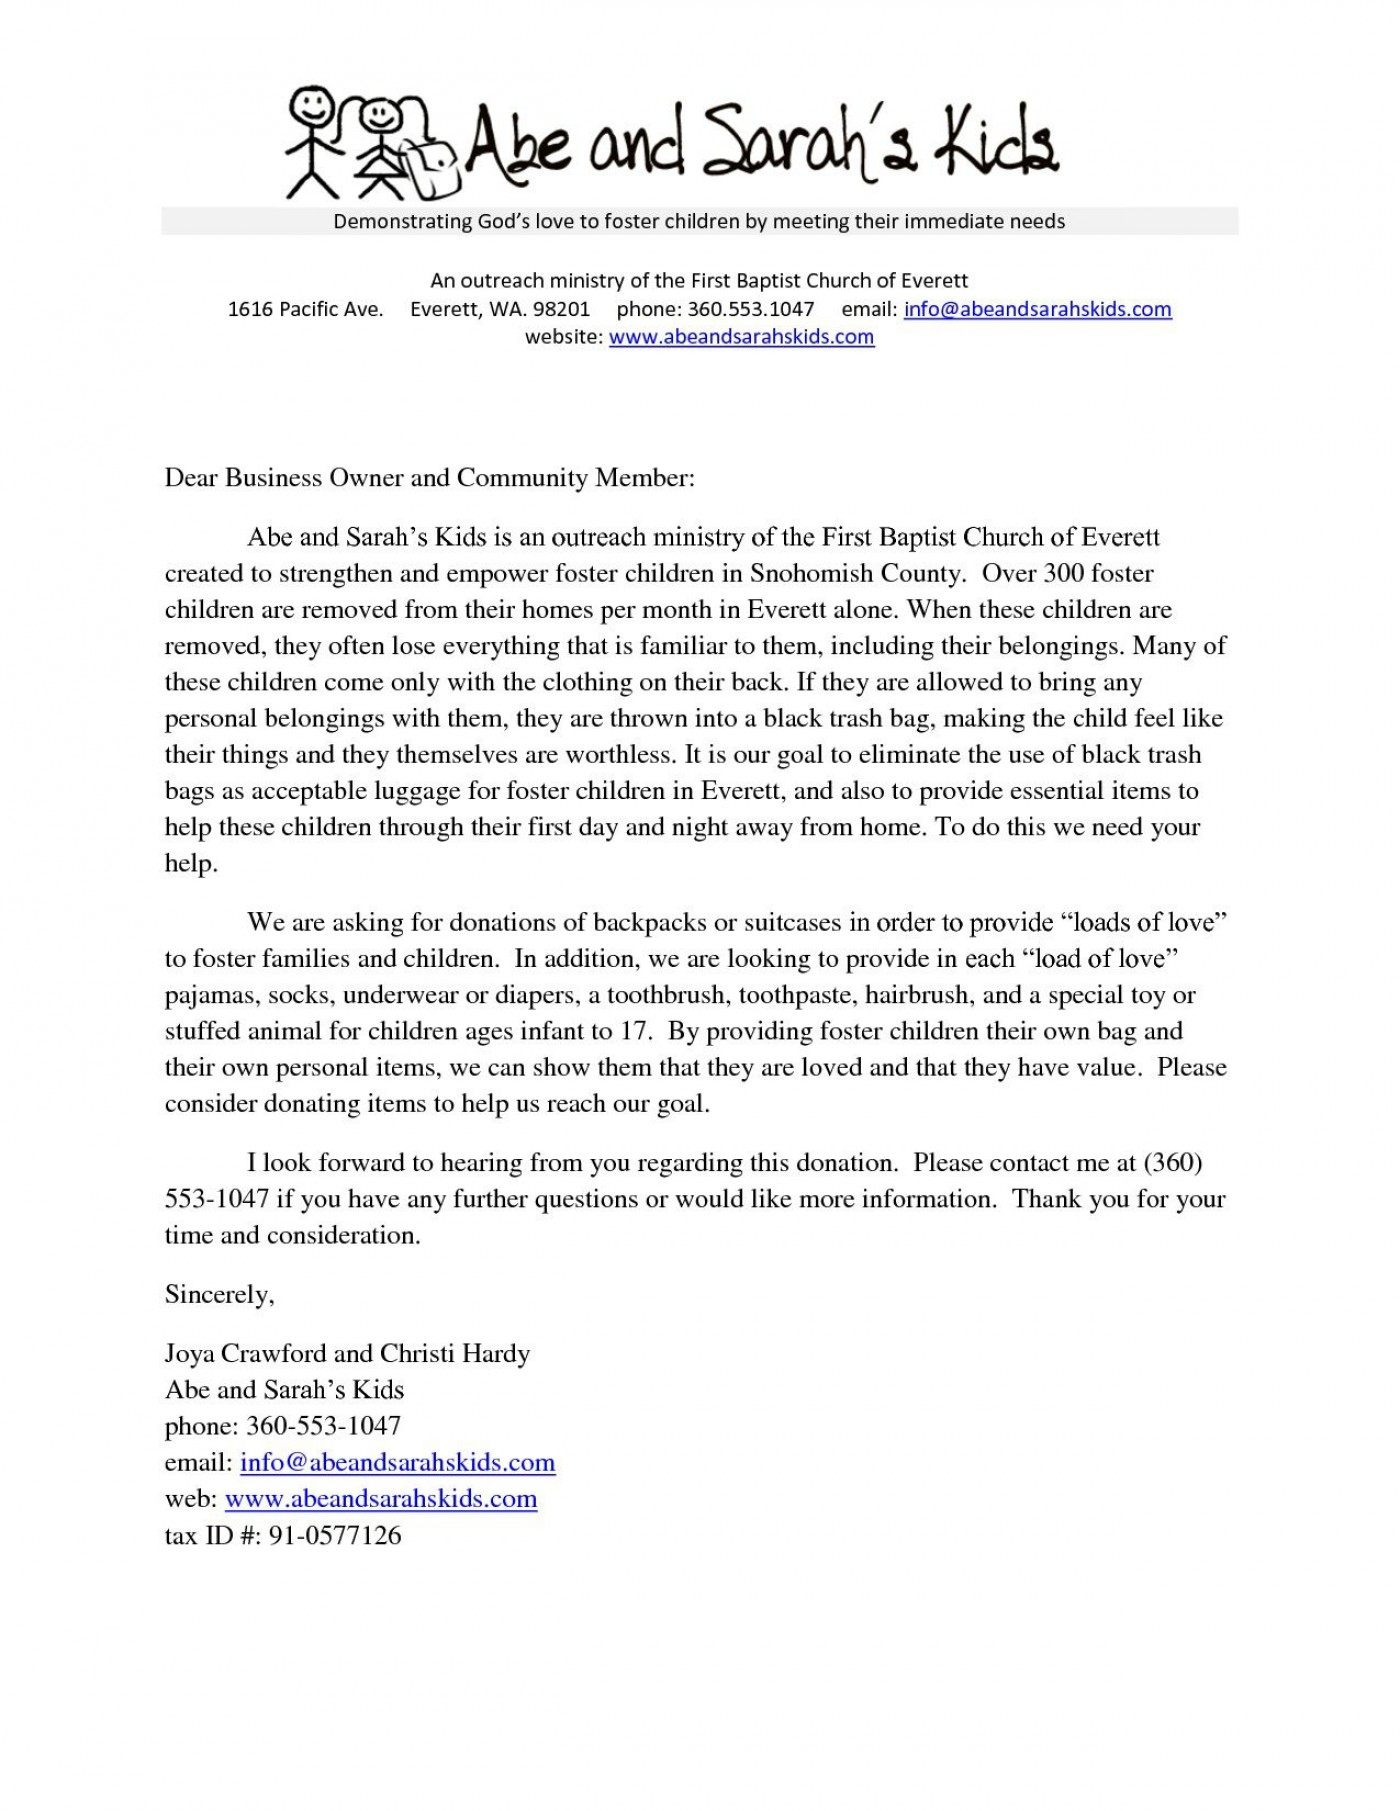 002 Stunning Fund Raising Letter Template Design  Fundraising For Mission Trip School Sample Of A Nonprofit Organization1400